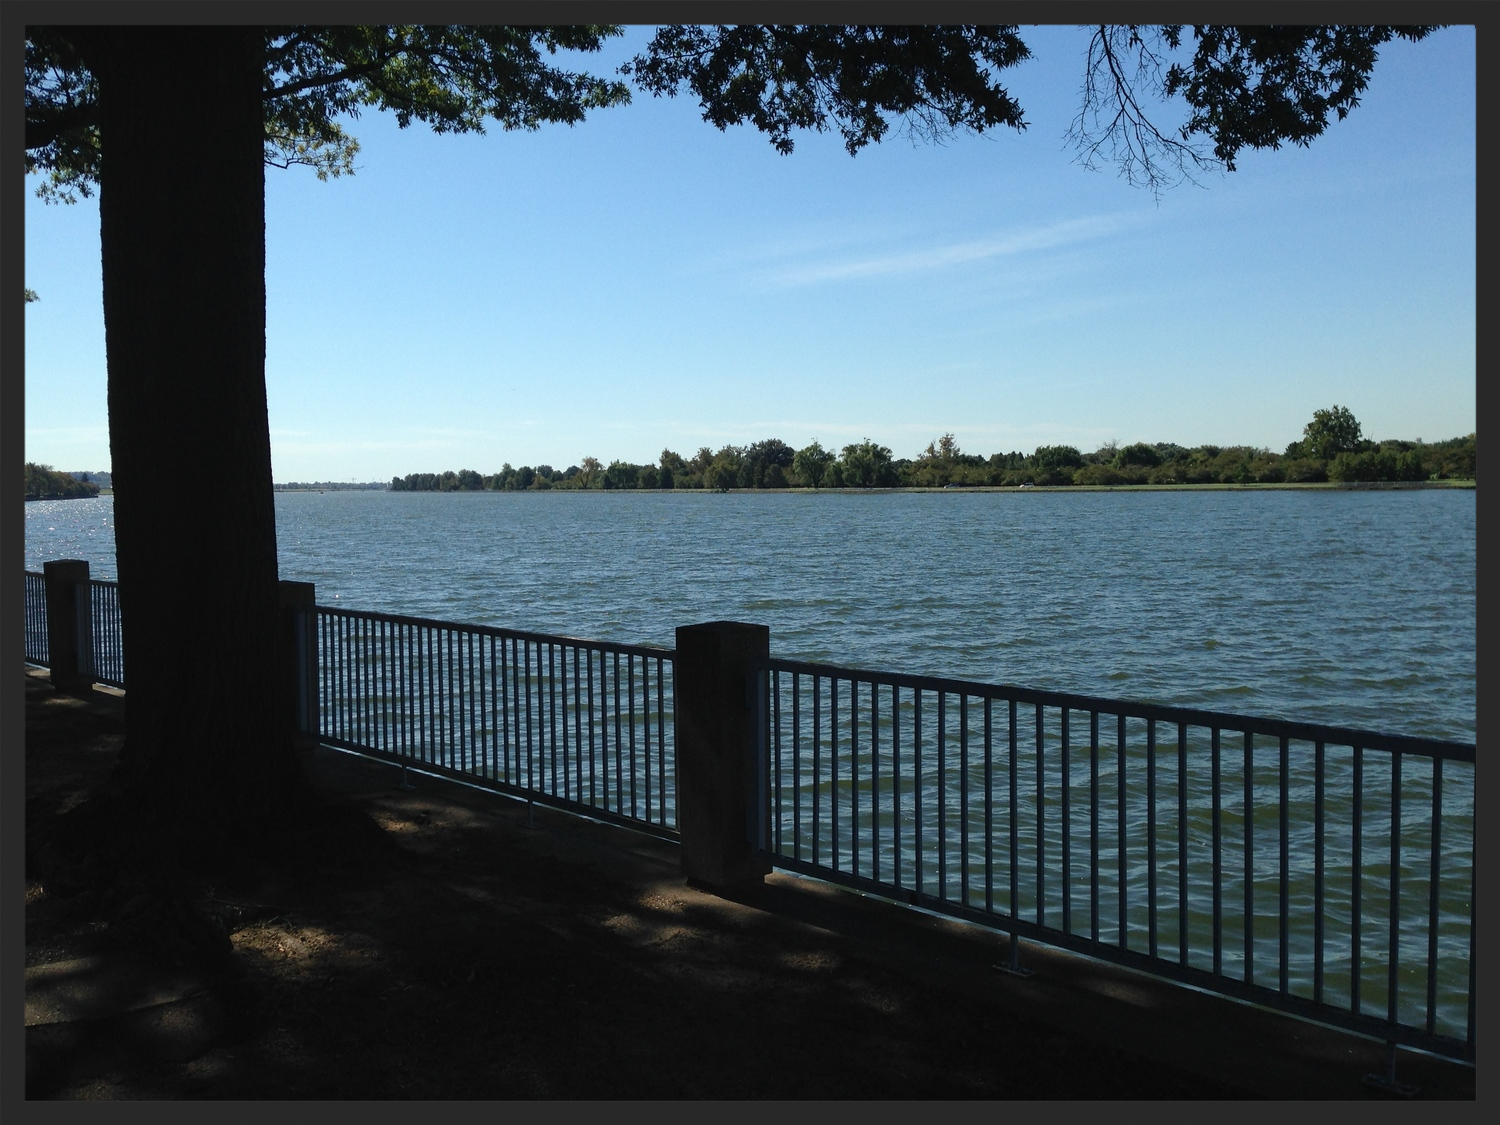 The view of Hain's Point from the DC's Southwest Waterfront.